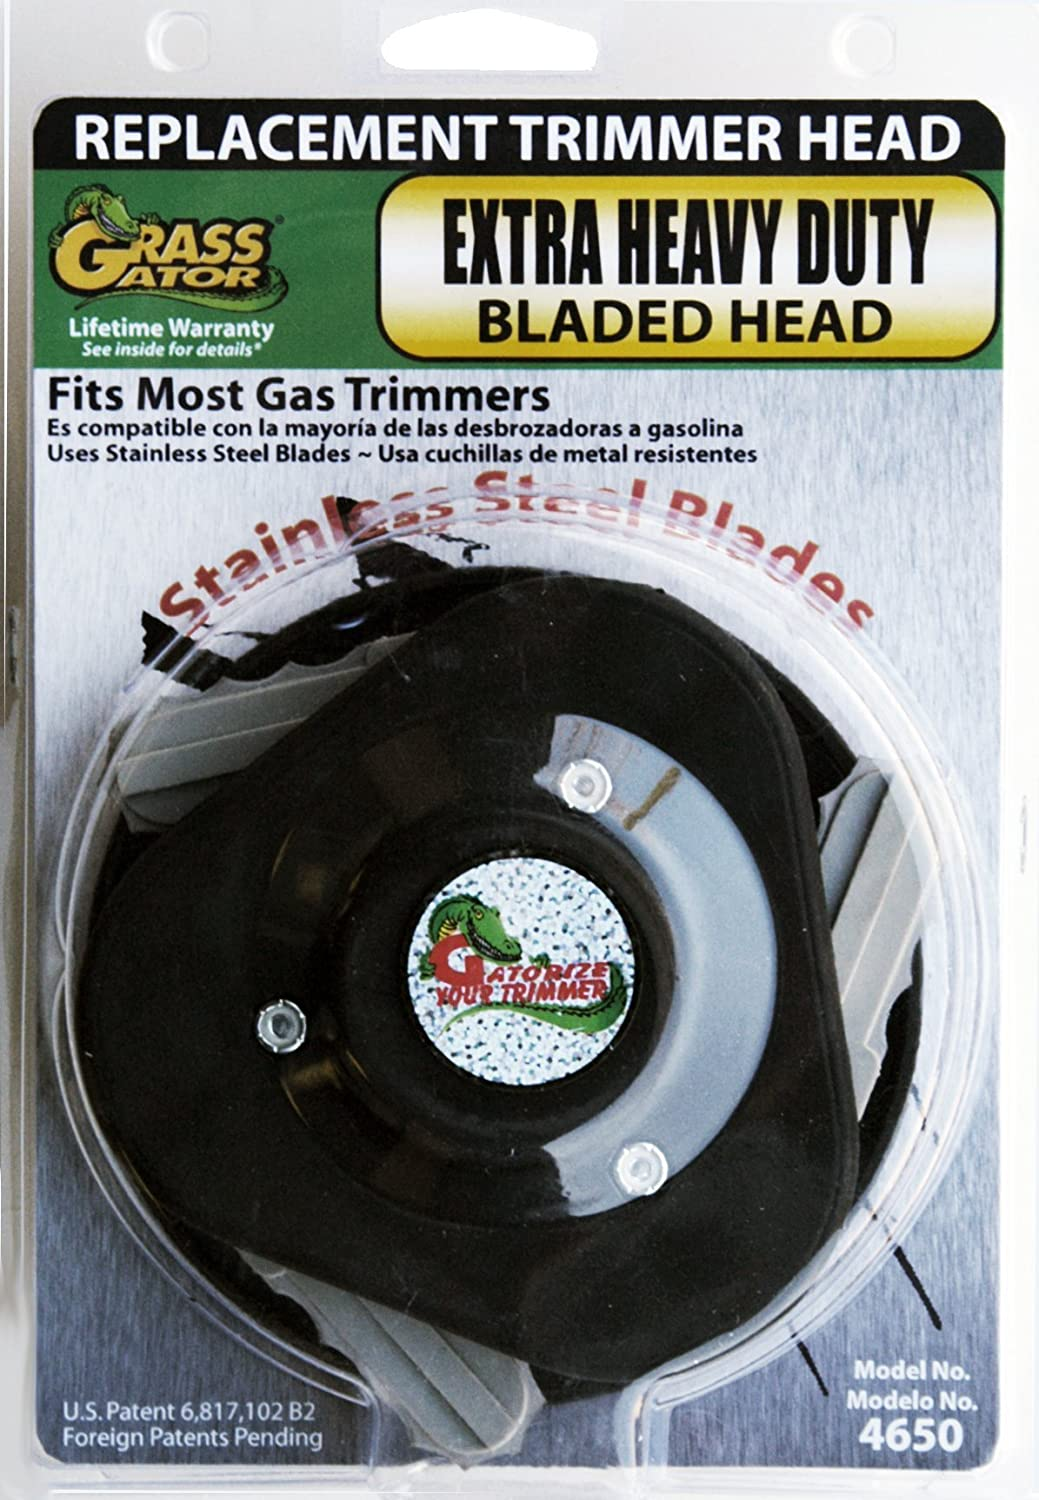 Grass Gator 33GG4650 Brush Cutter Extra Heavy Duty Replacement String Trimmer Head